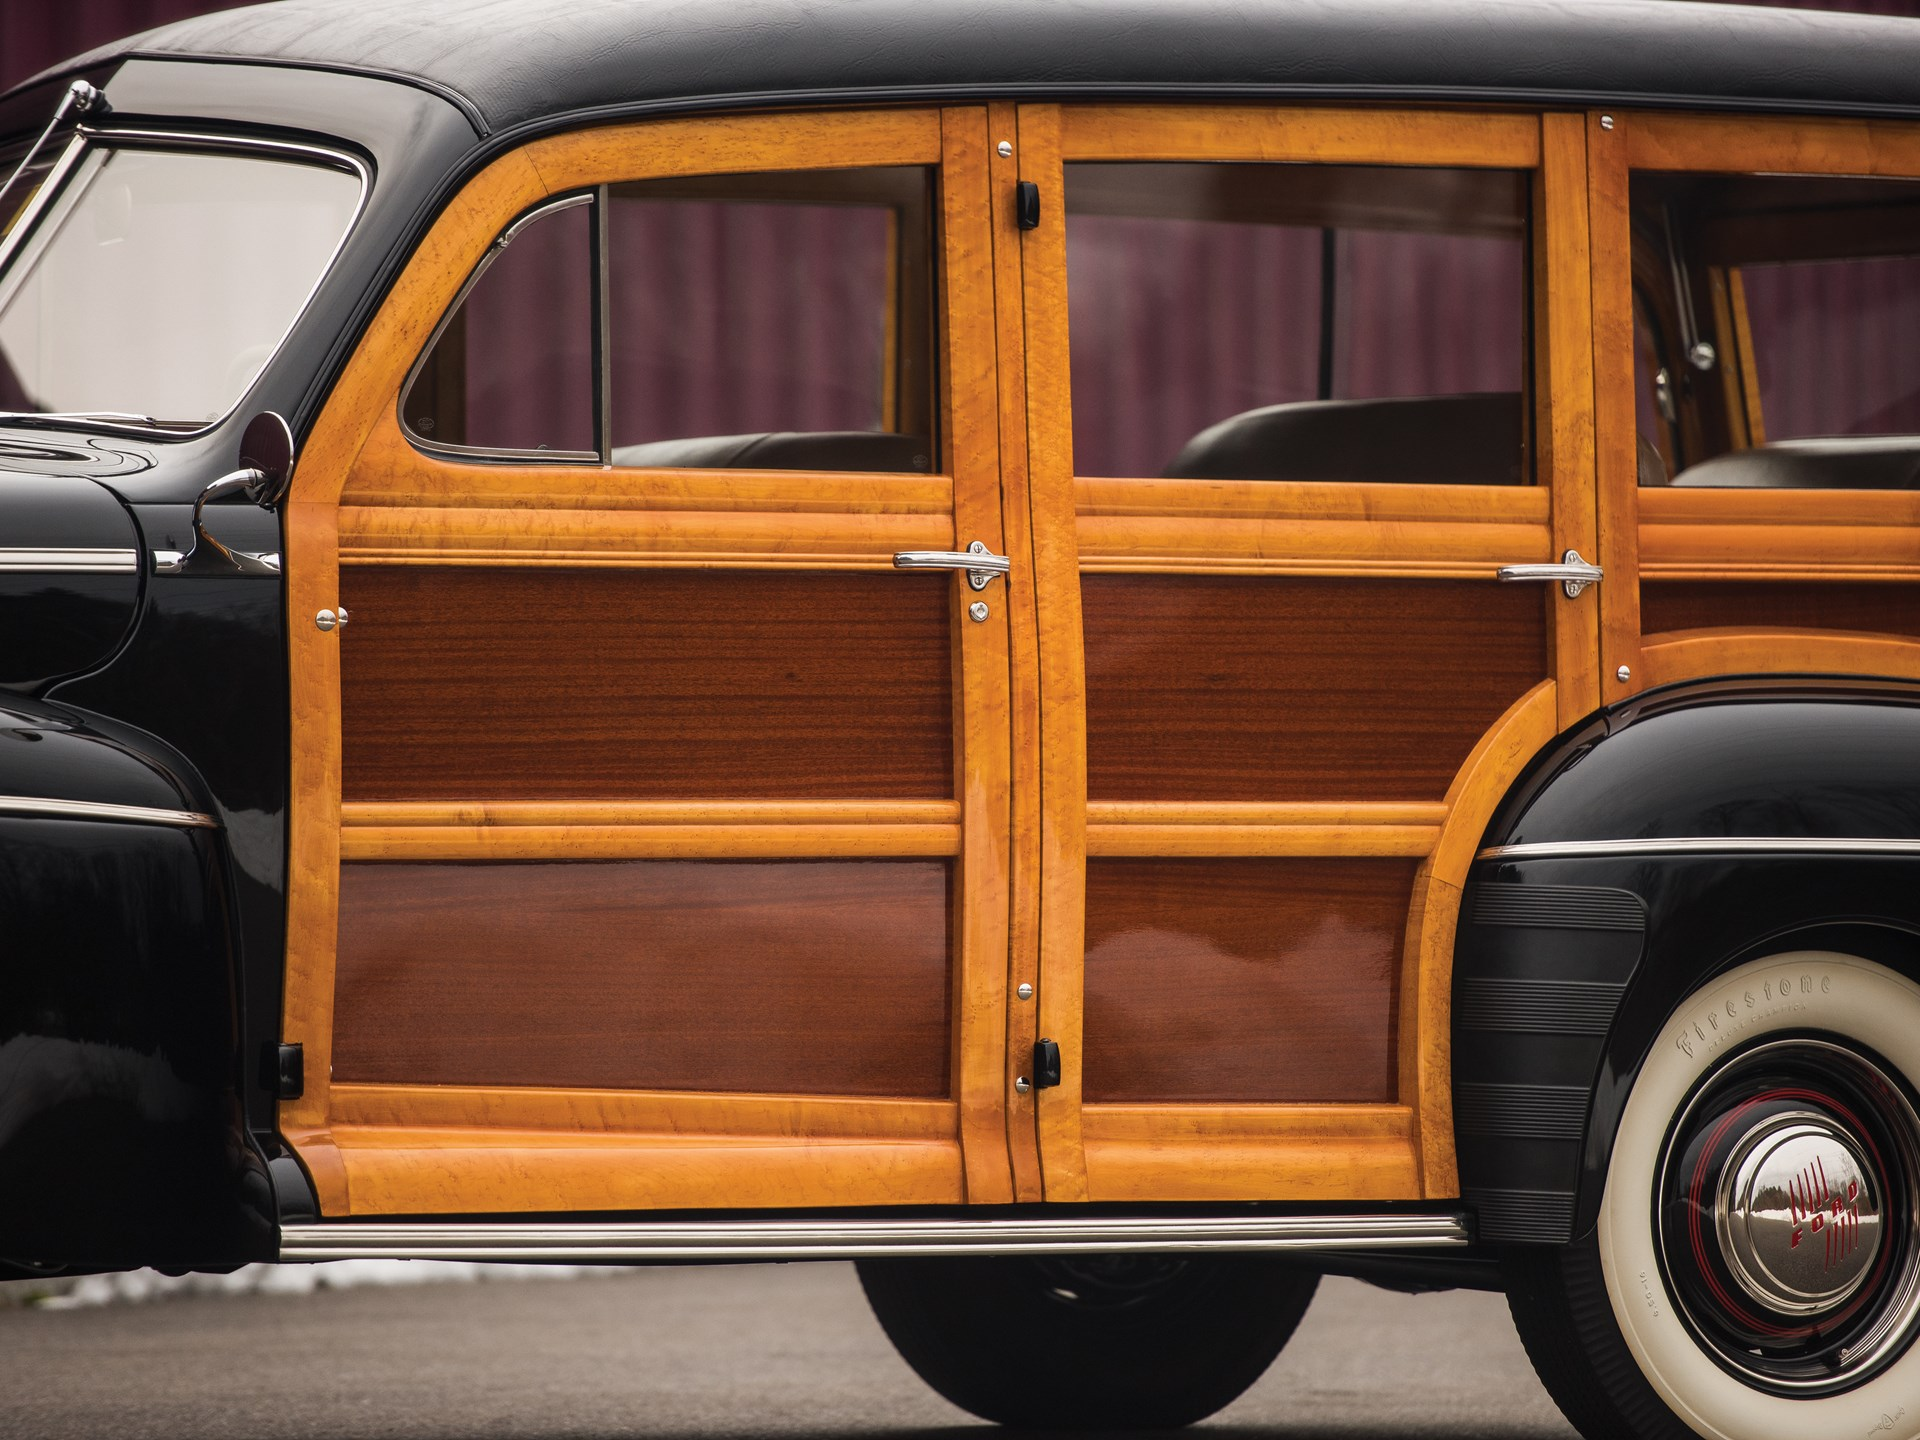 1946 Ford Super DeLuxe Station Wagon